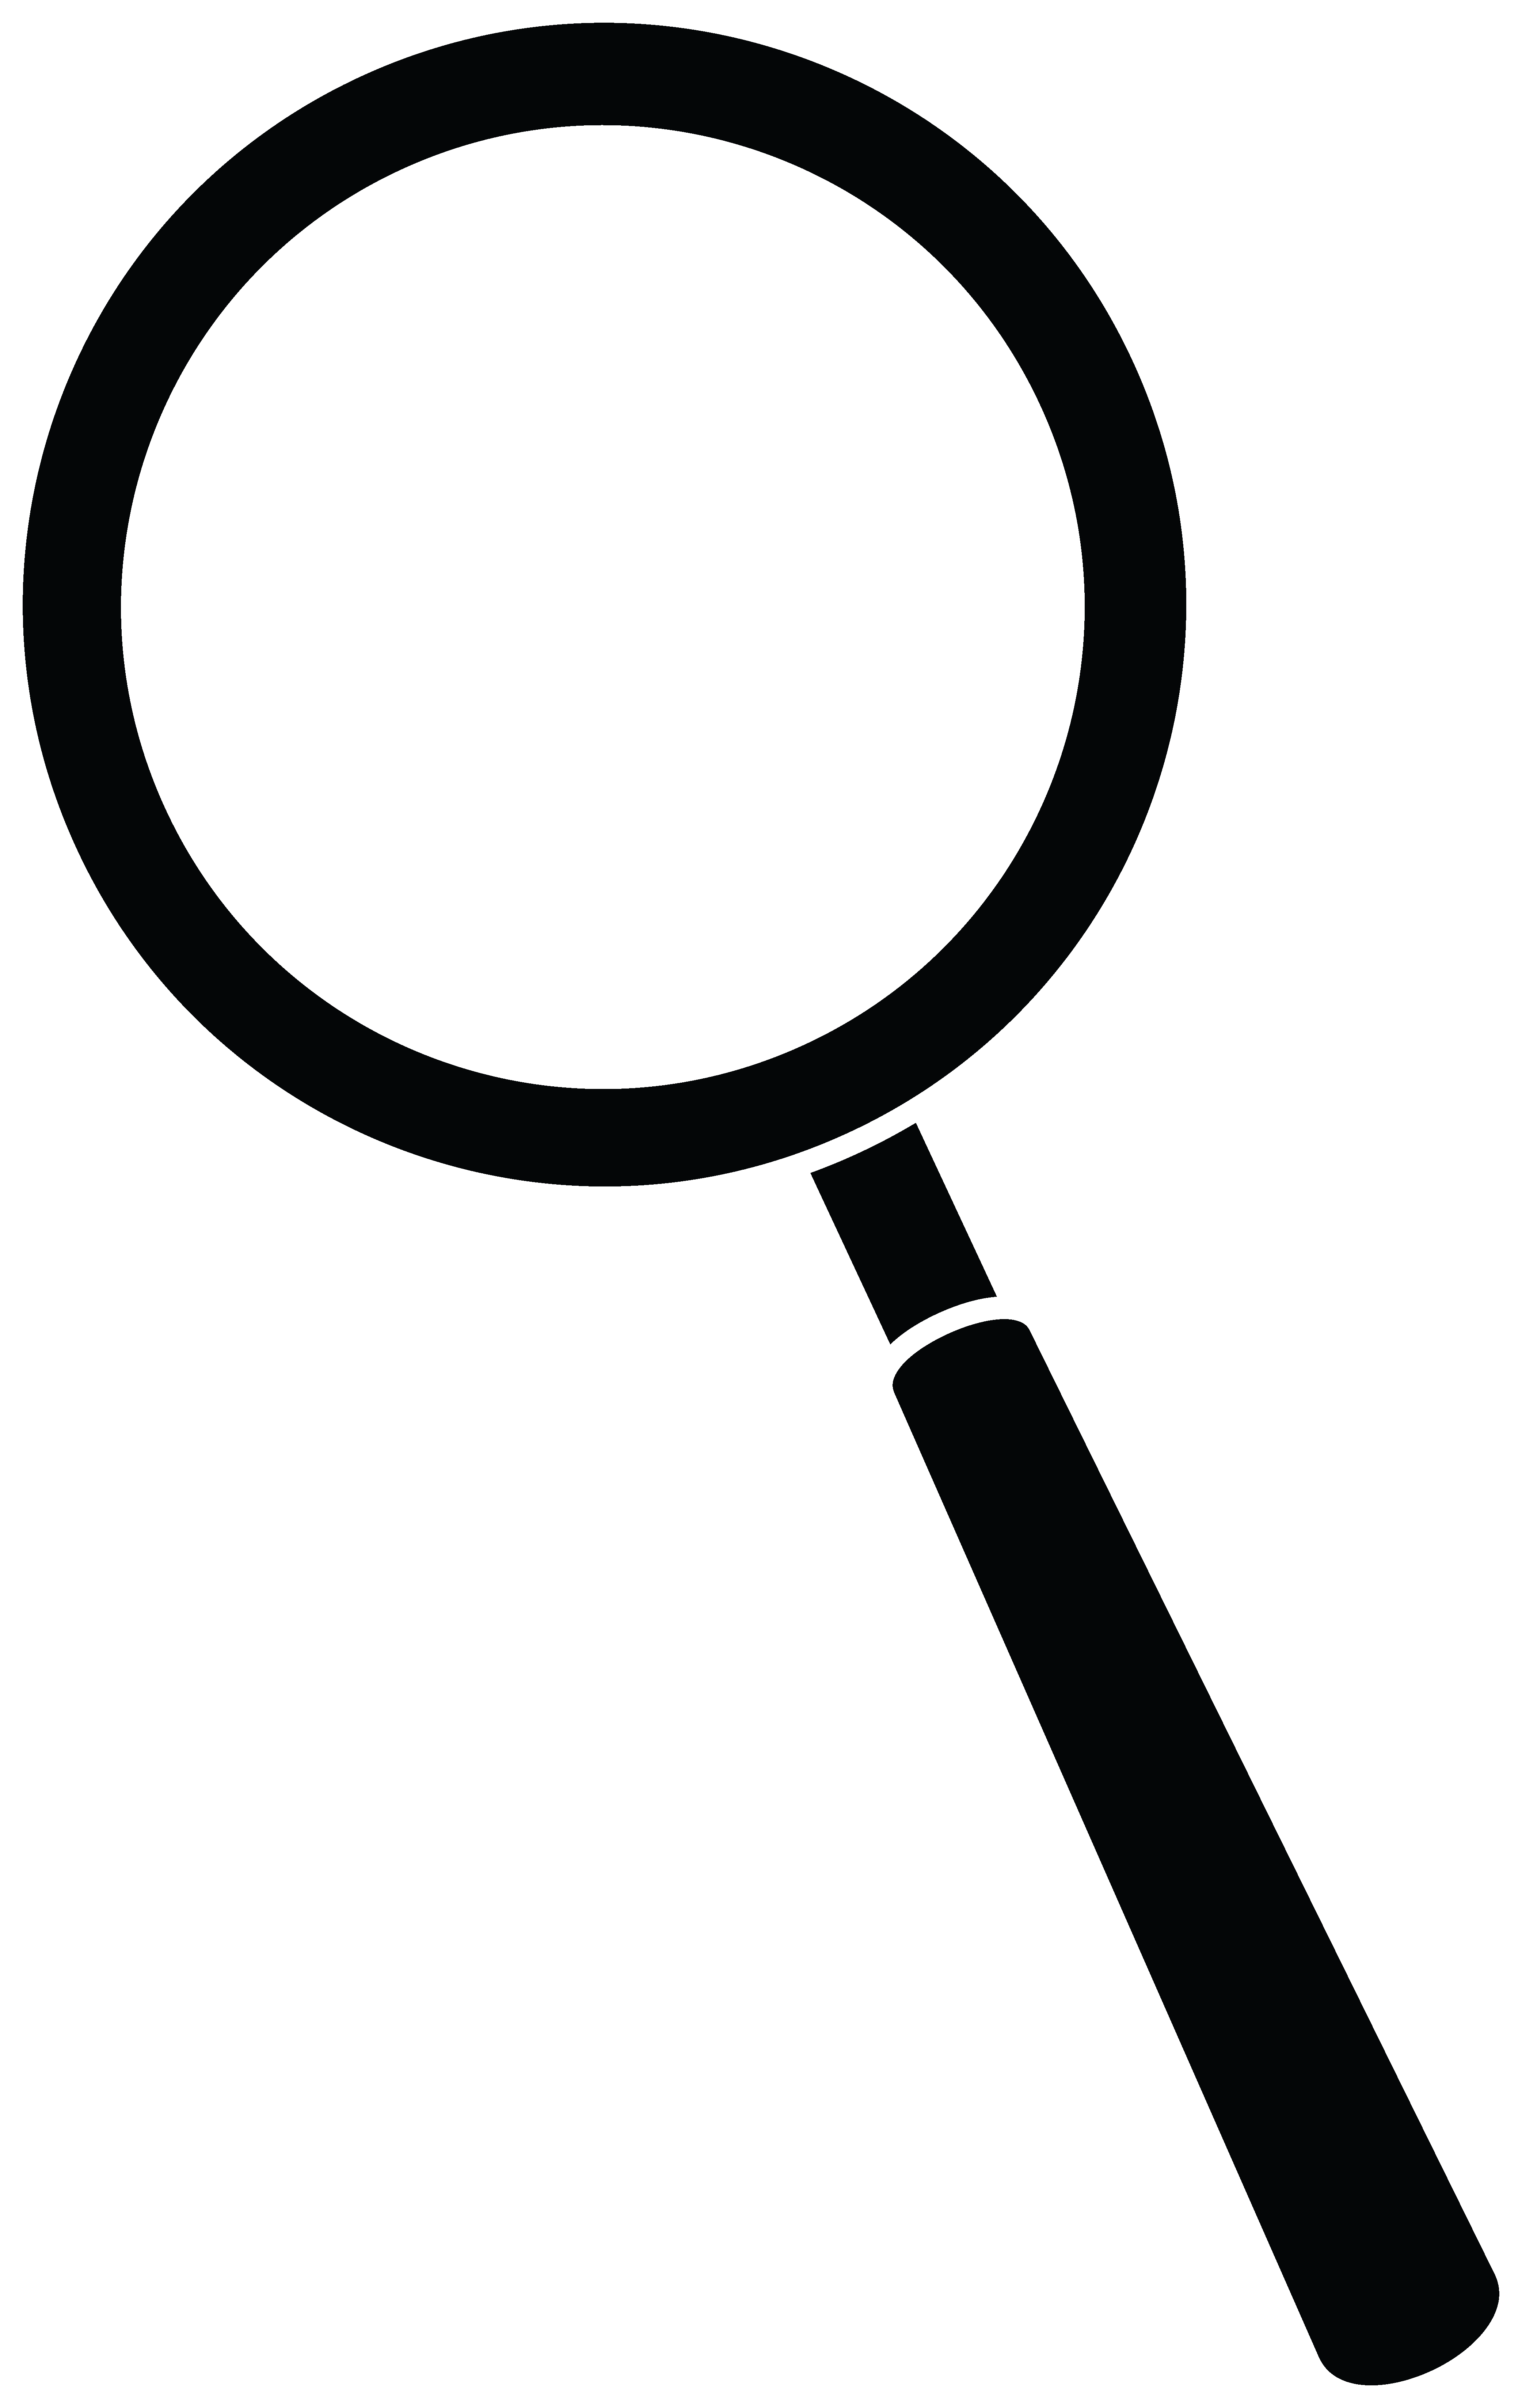 White magnifying glass icon clipart banner royalty free library Collection of 14 free Detective clipart spy glass aztec clipart ... banner royalty free library